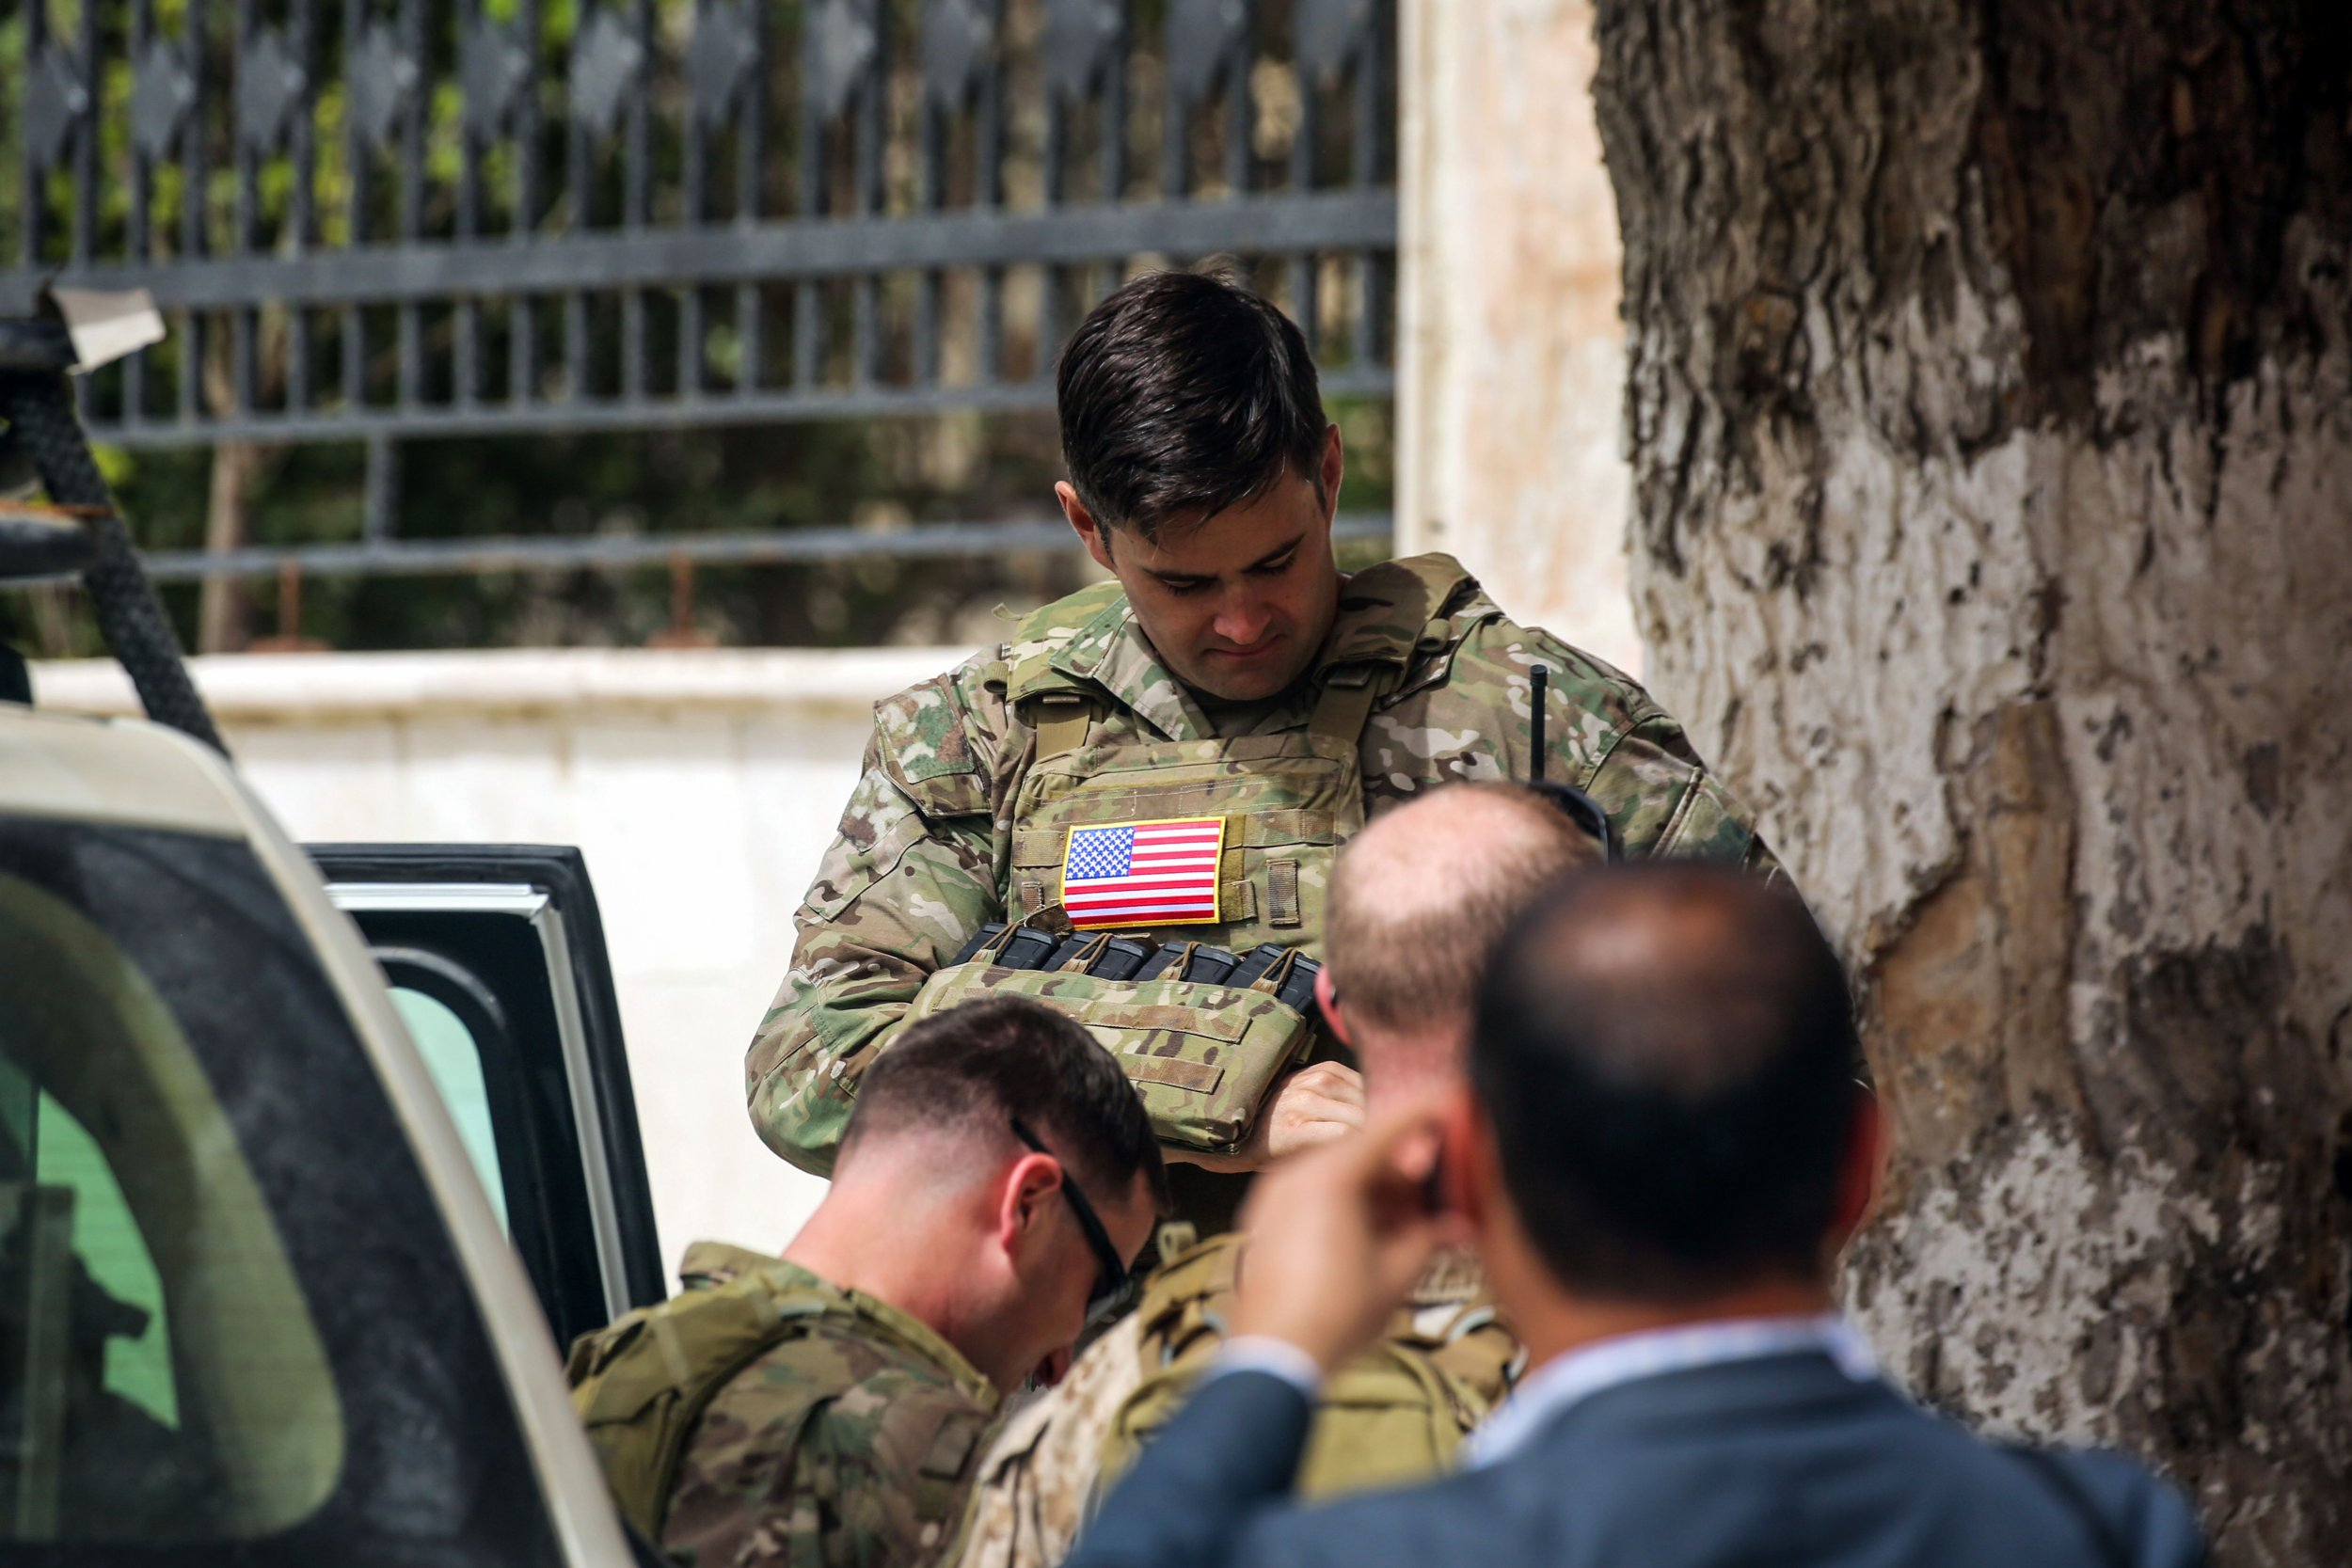 US Soldiers Syria peacekeeping